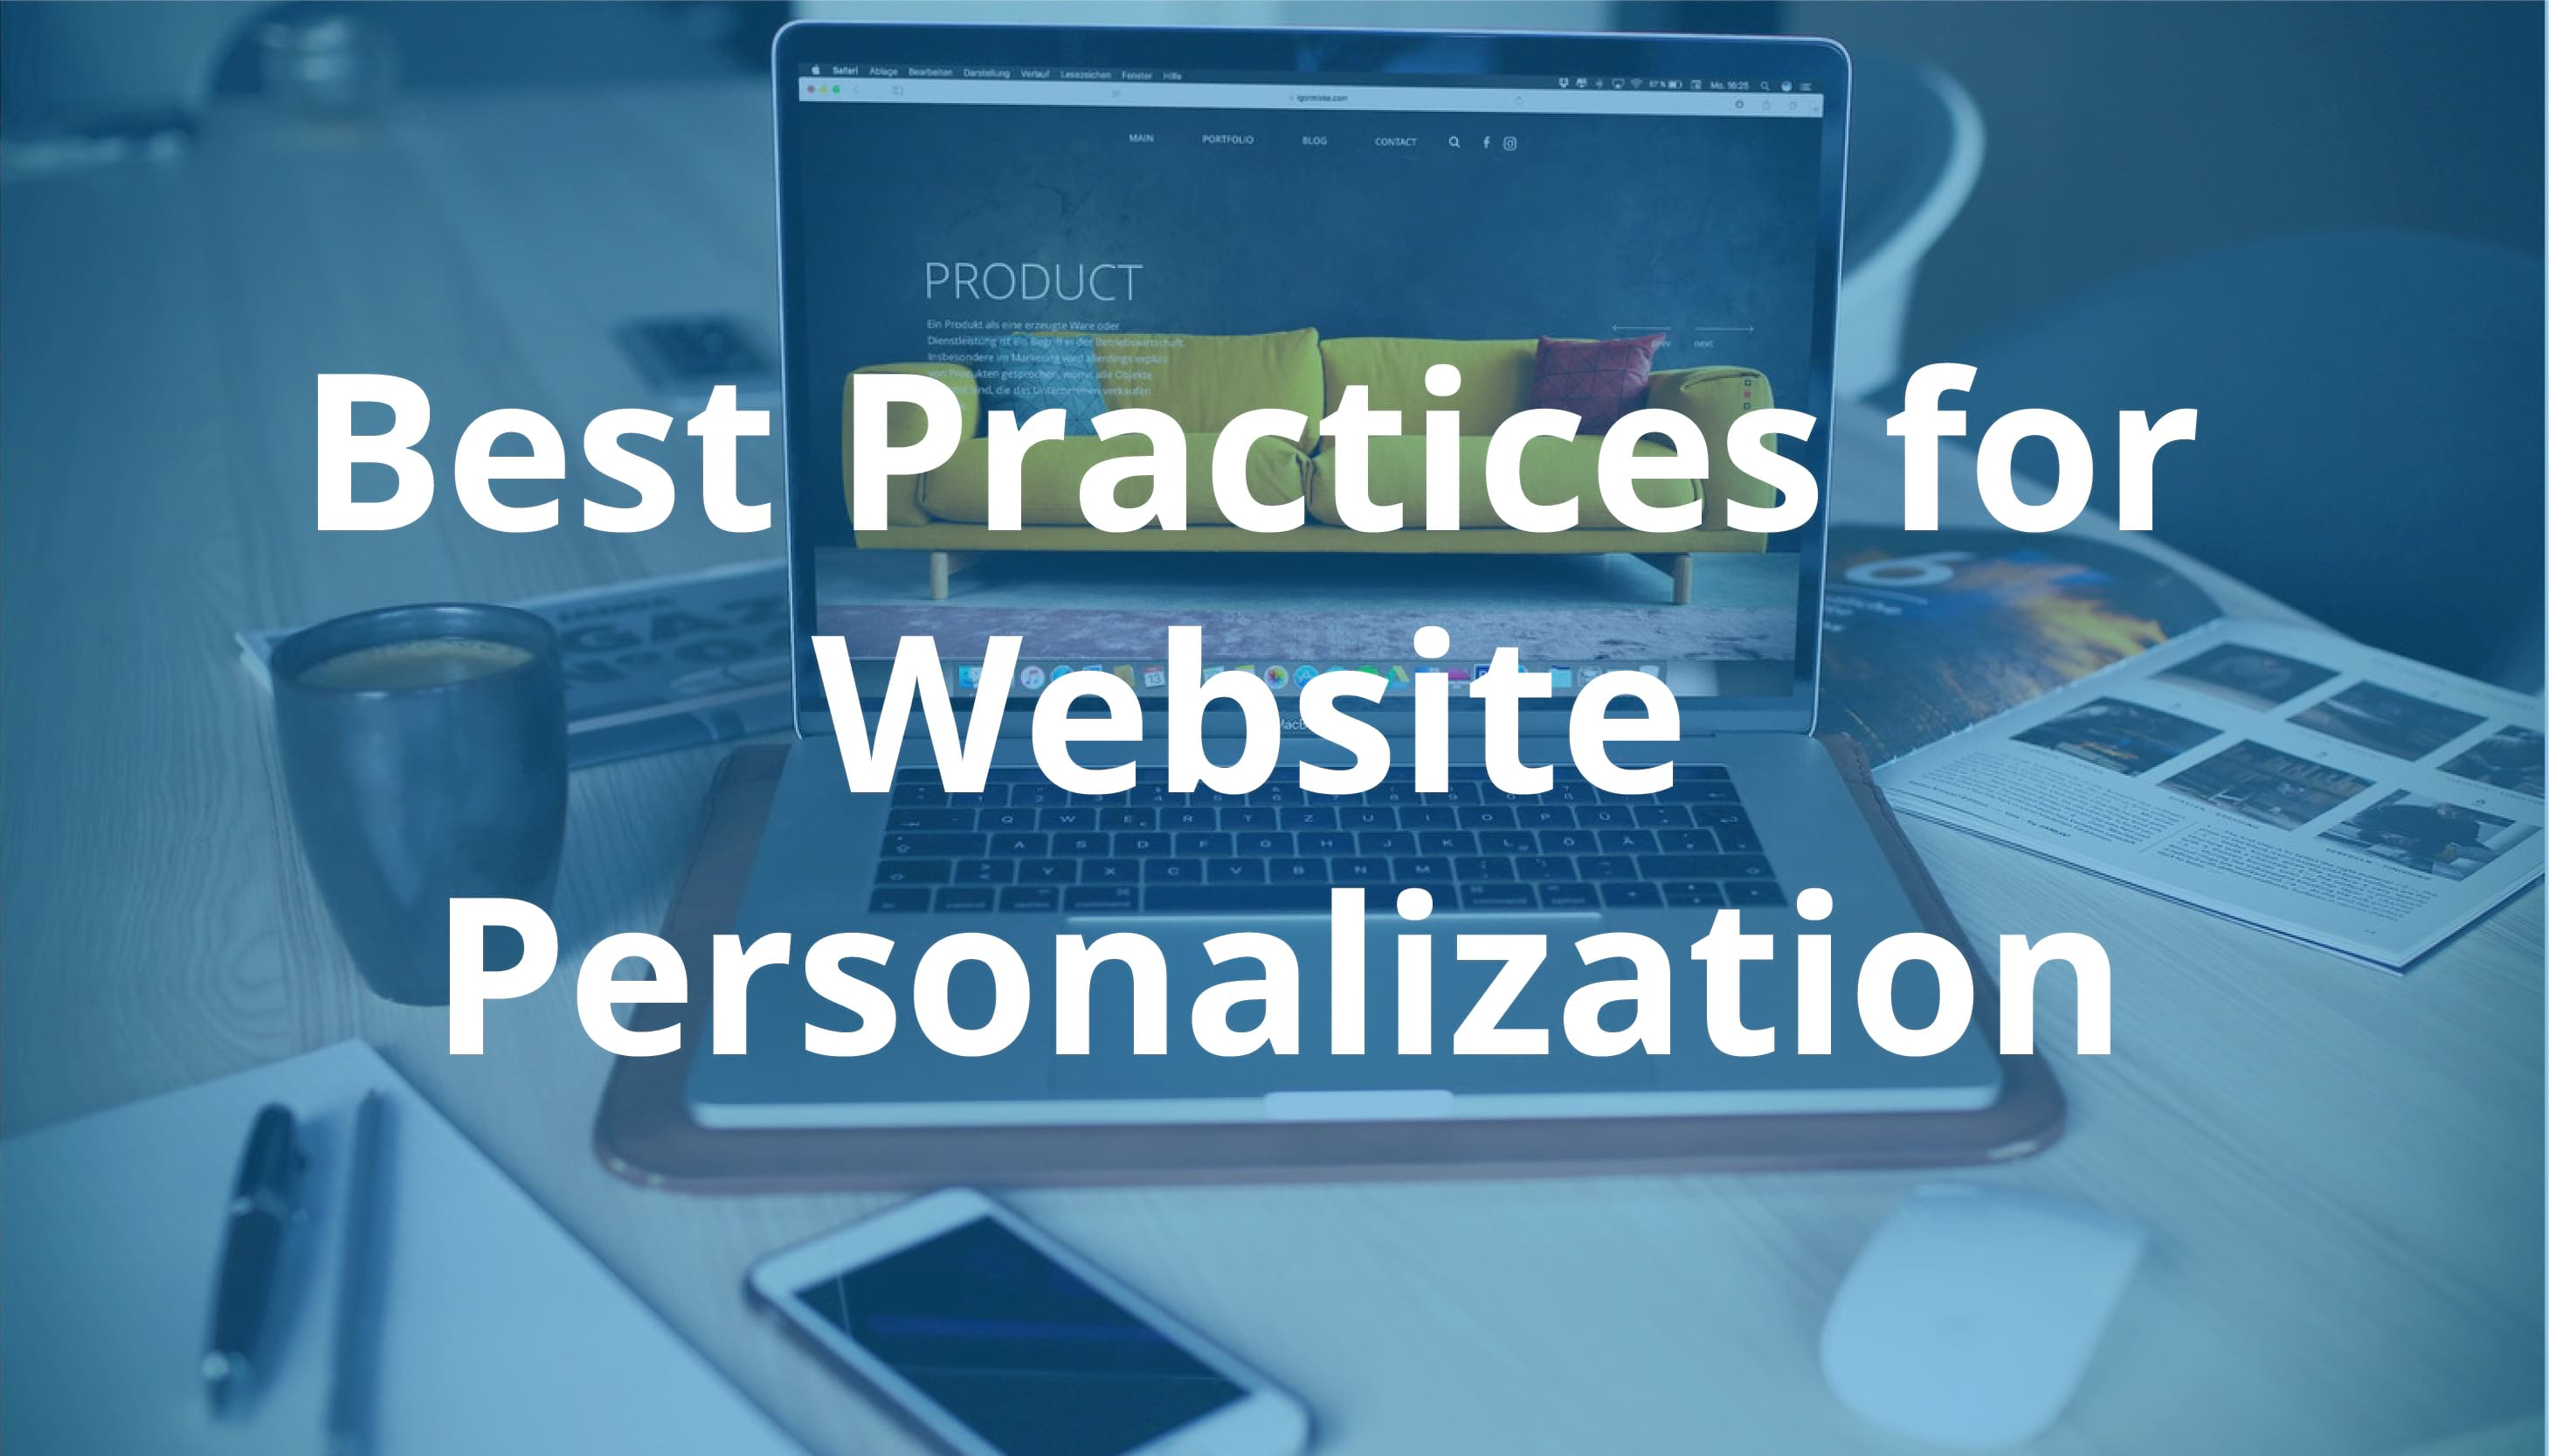 Website Personalization - Best Practices